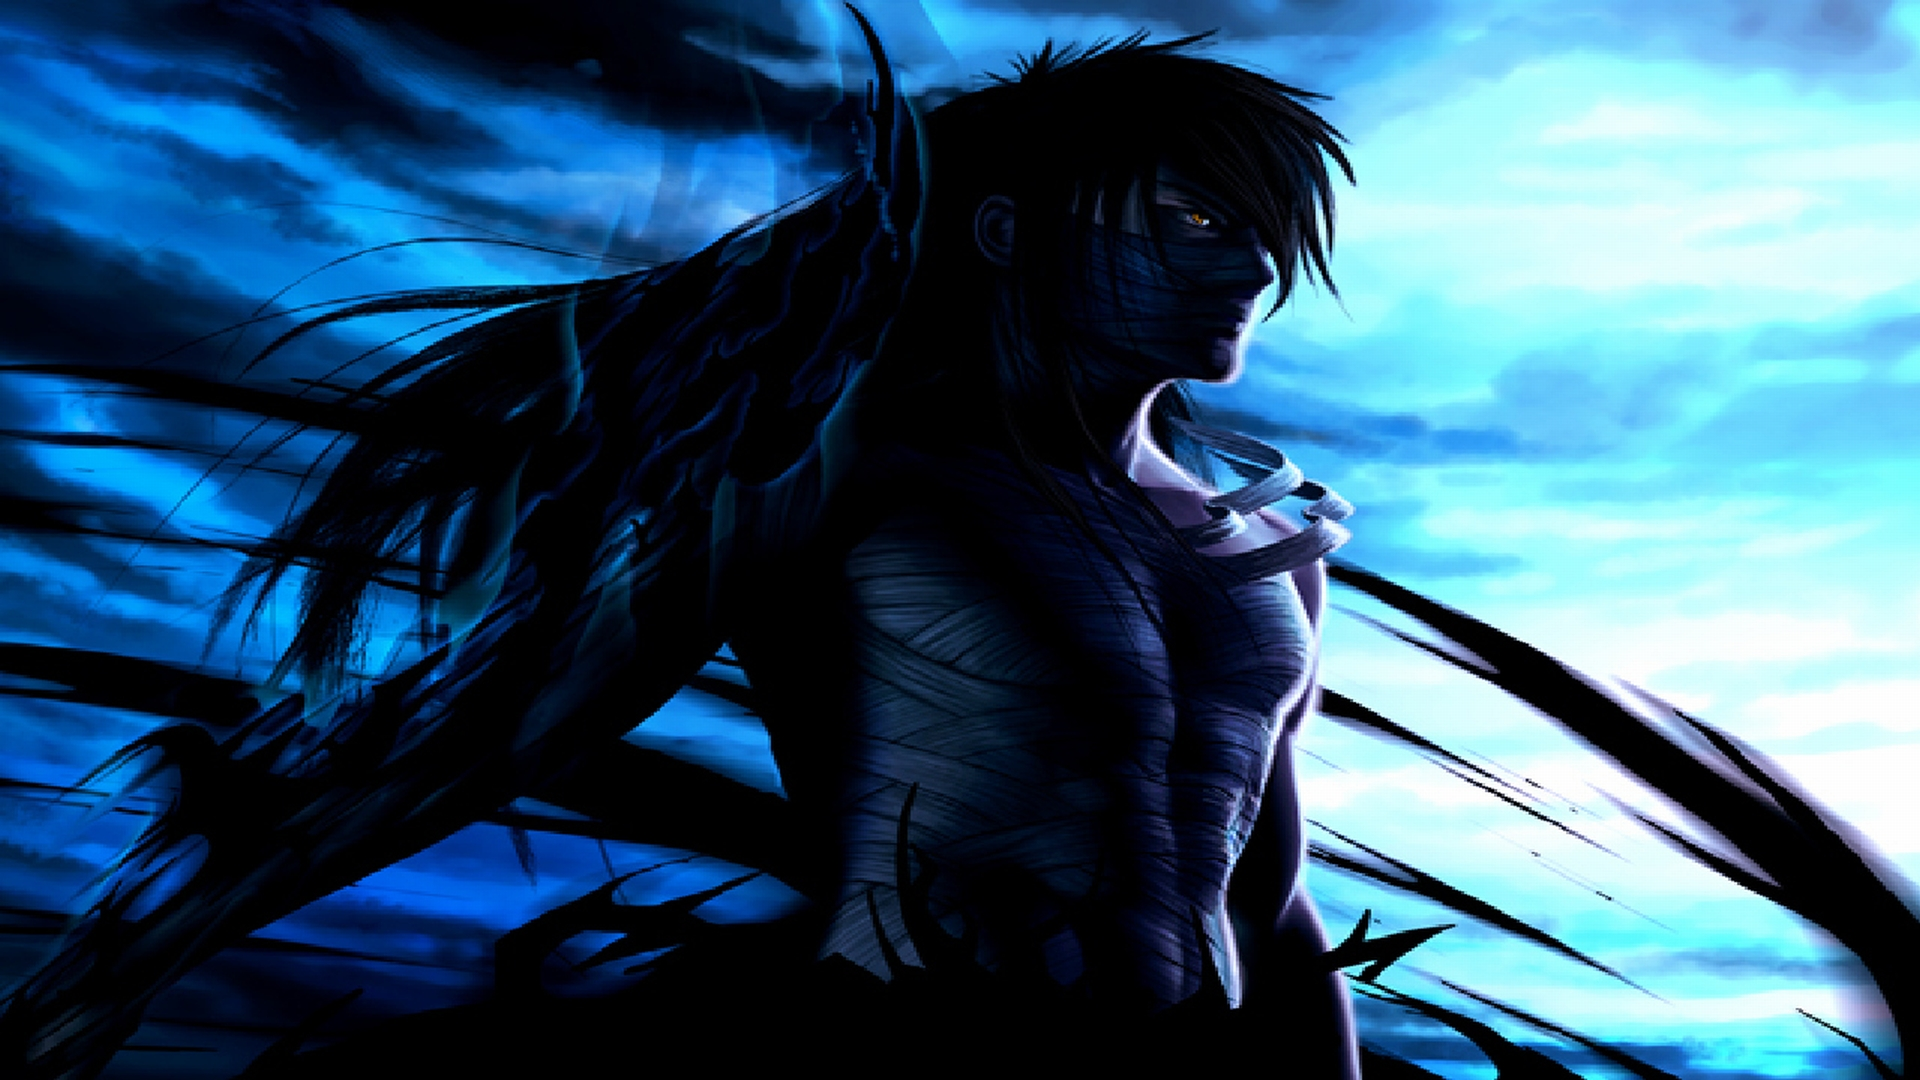 Bleach wallpapers high quality download free - Anime images download ...